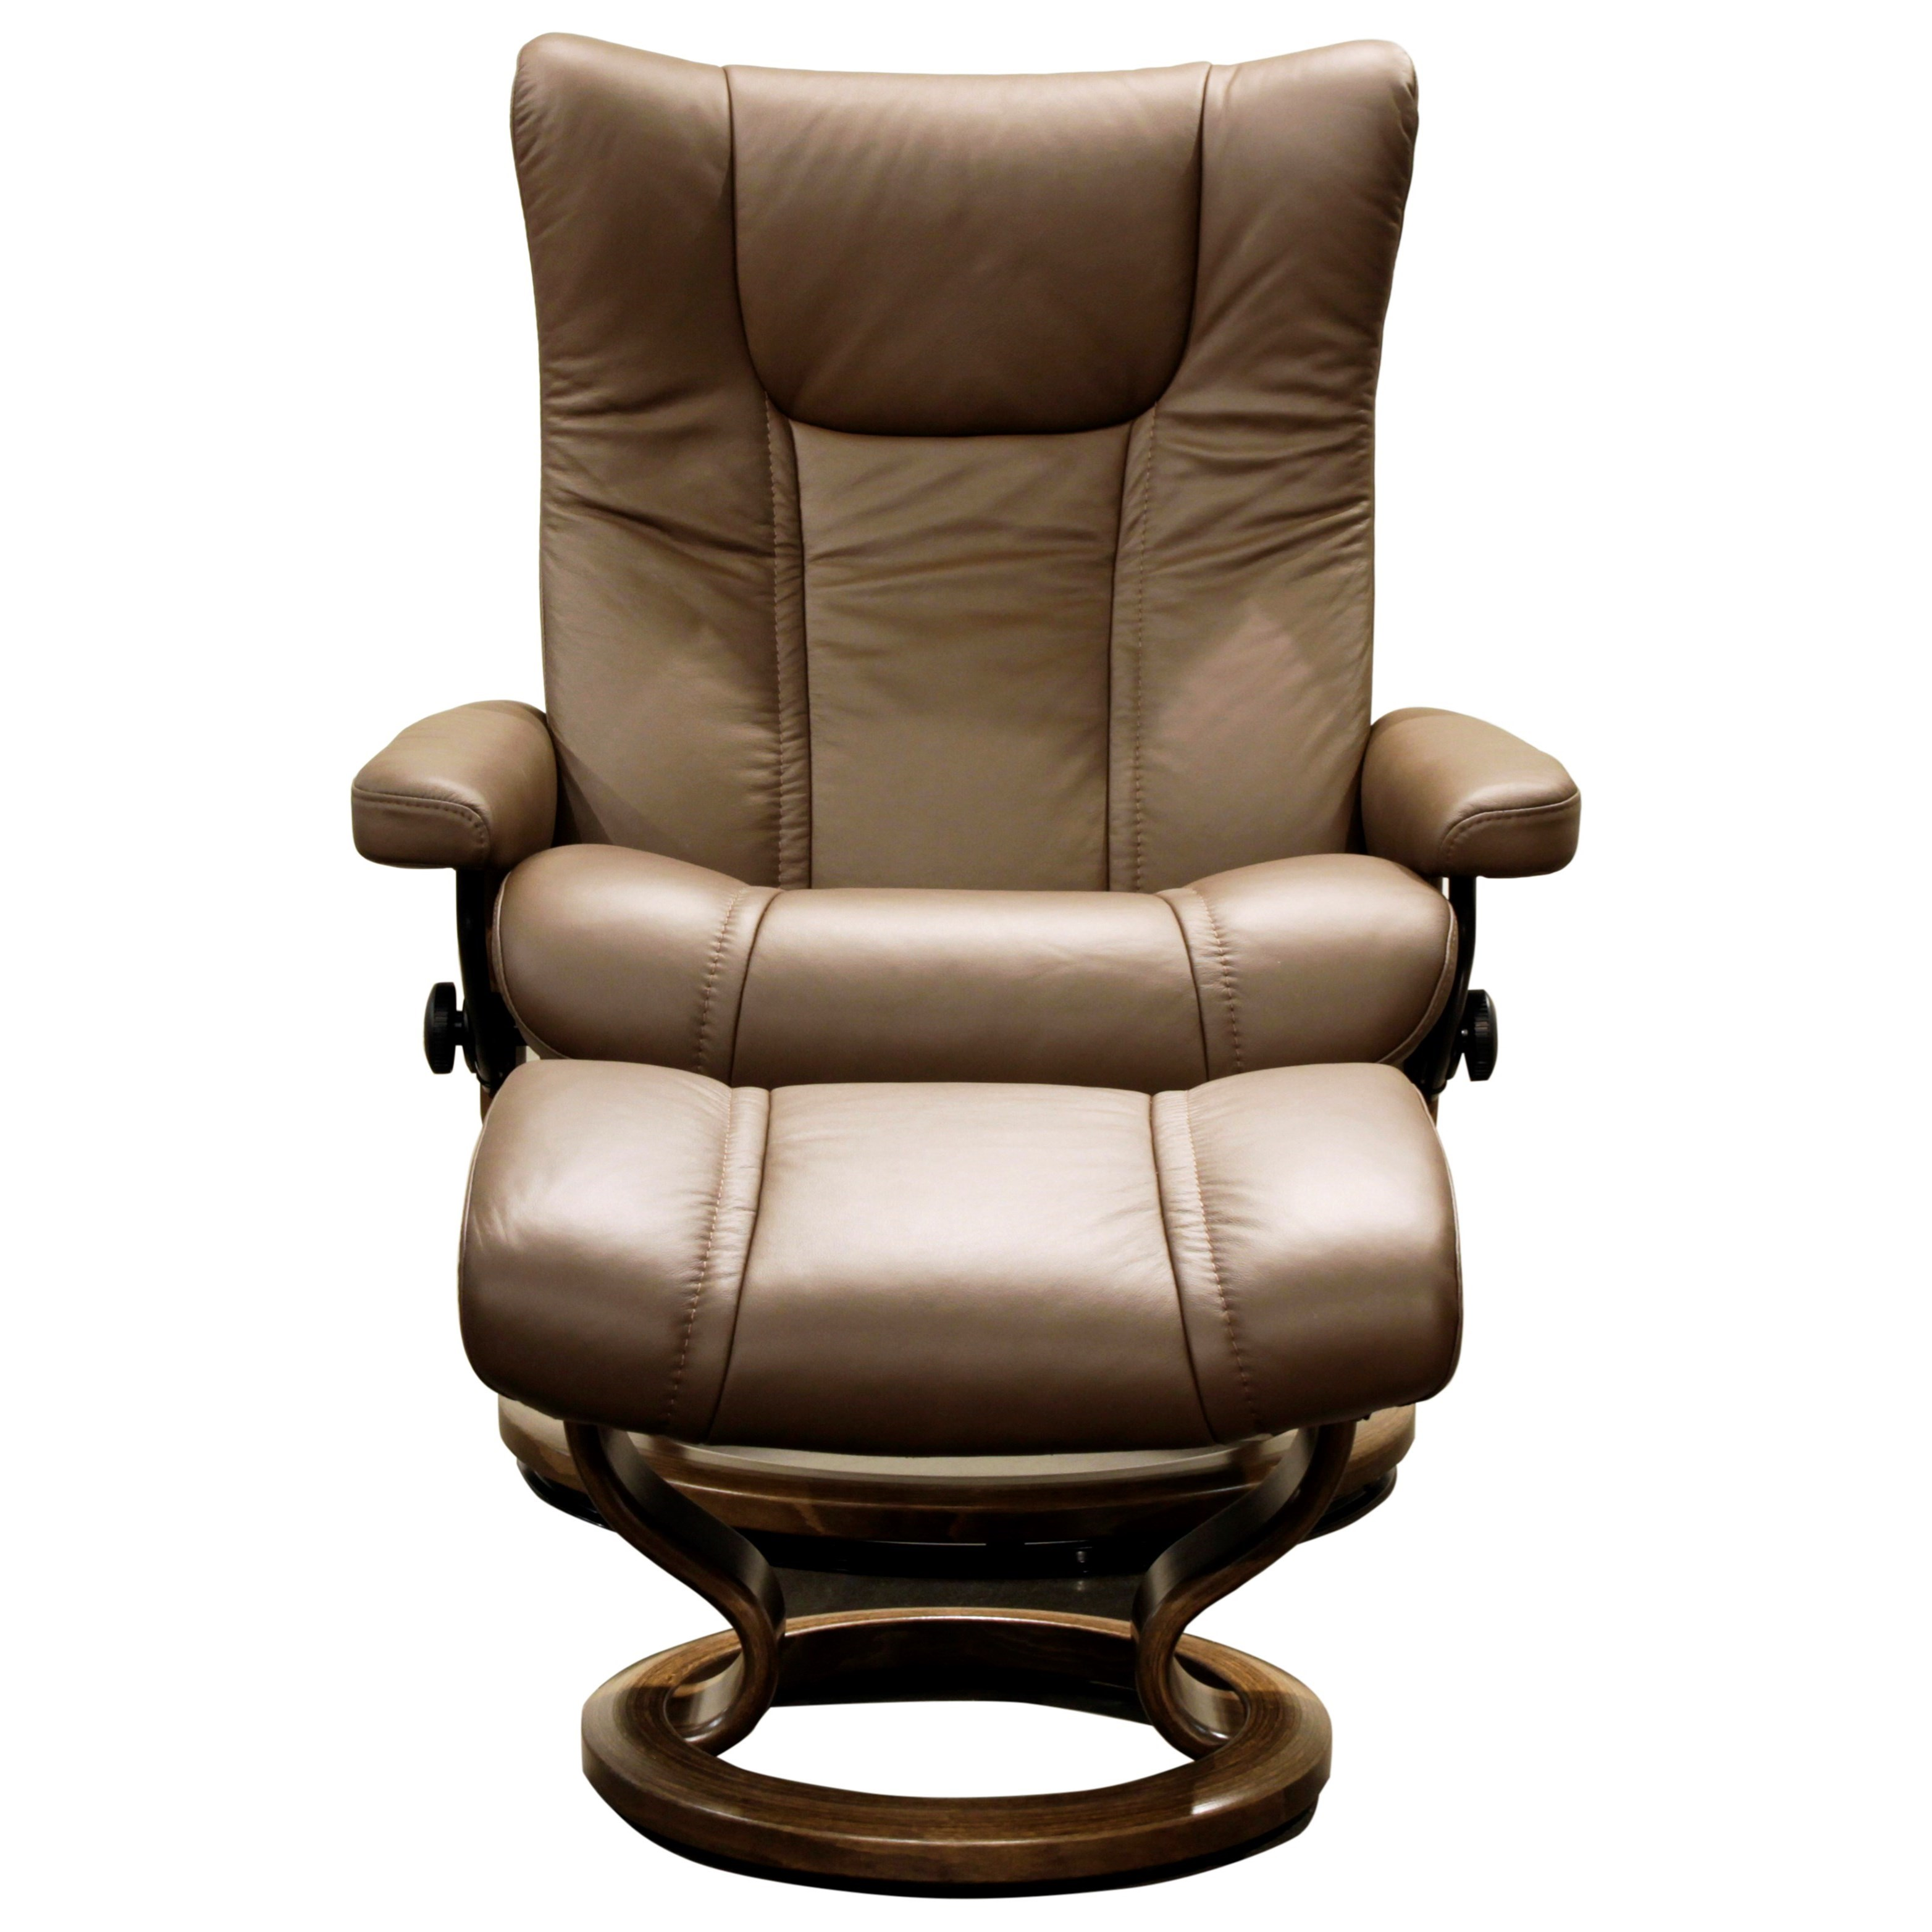 Stressless-world.com Stressless World